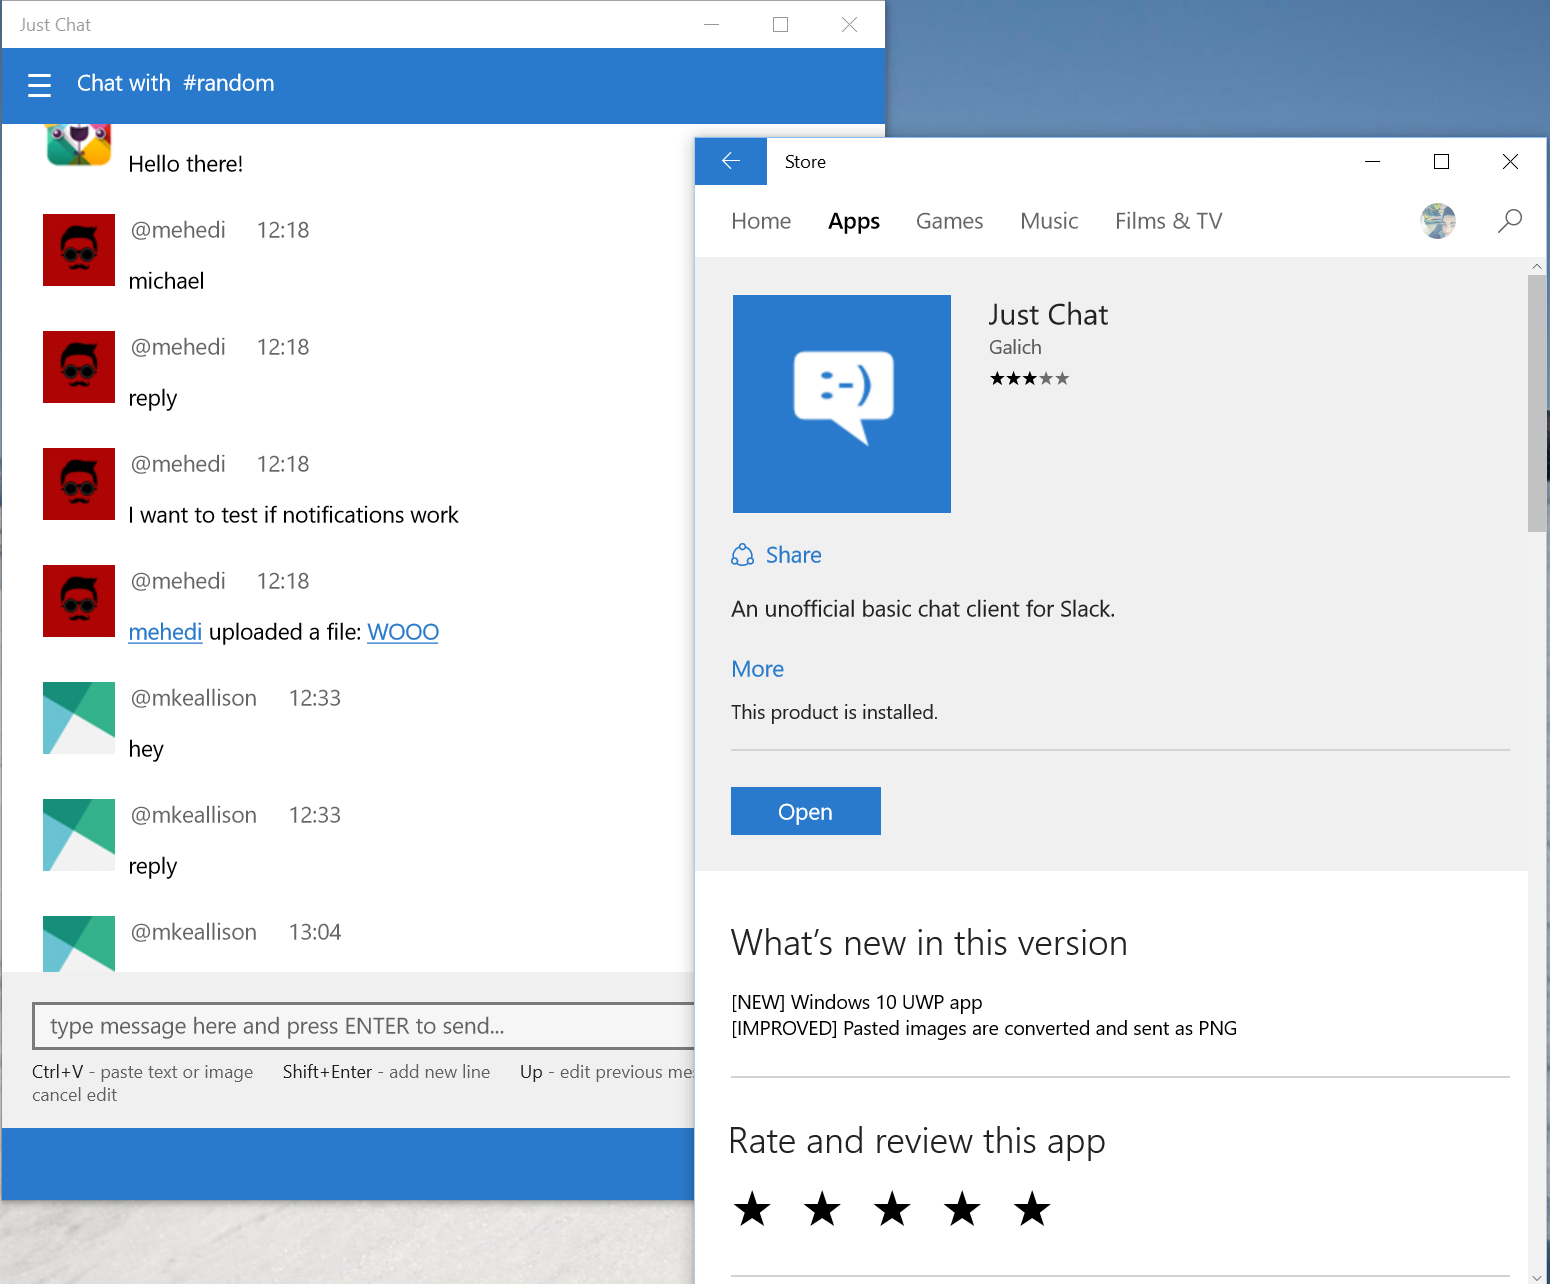 Gay Chat for Windows 10 free download on 10 App